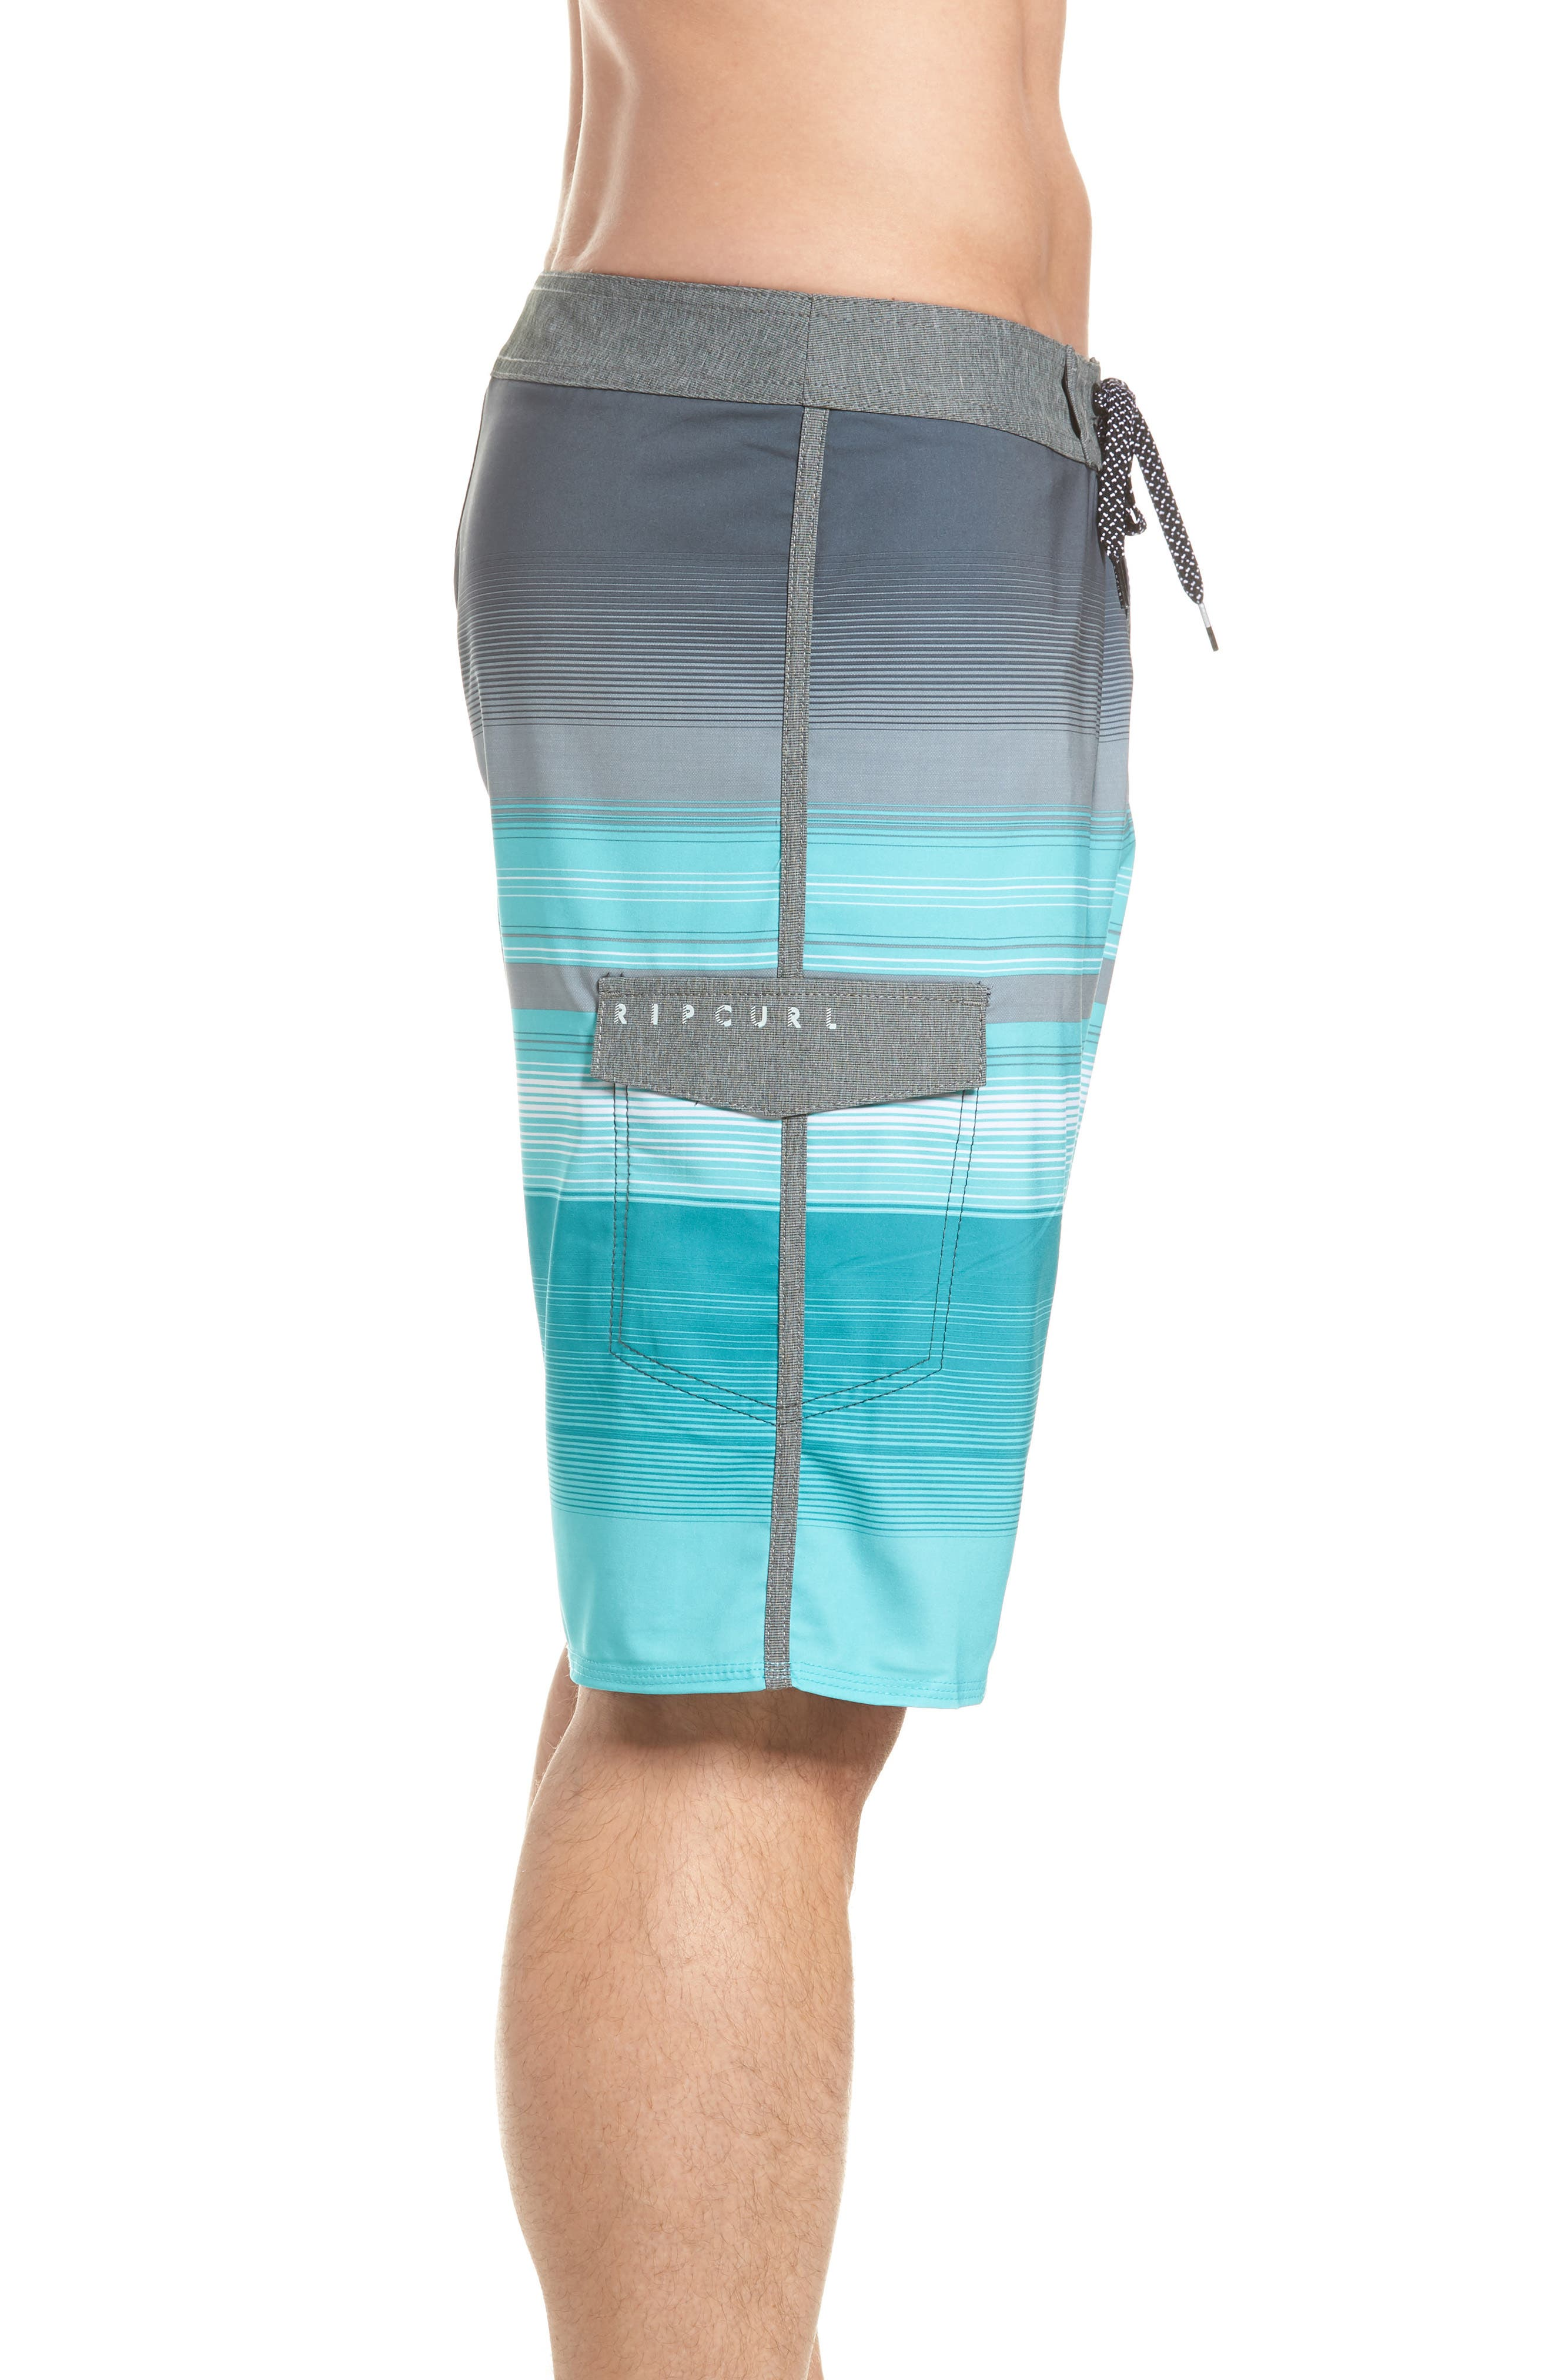 Mirage Accelerate Board Shorts,                             Alternate thumbnail 4, color,                             Teal